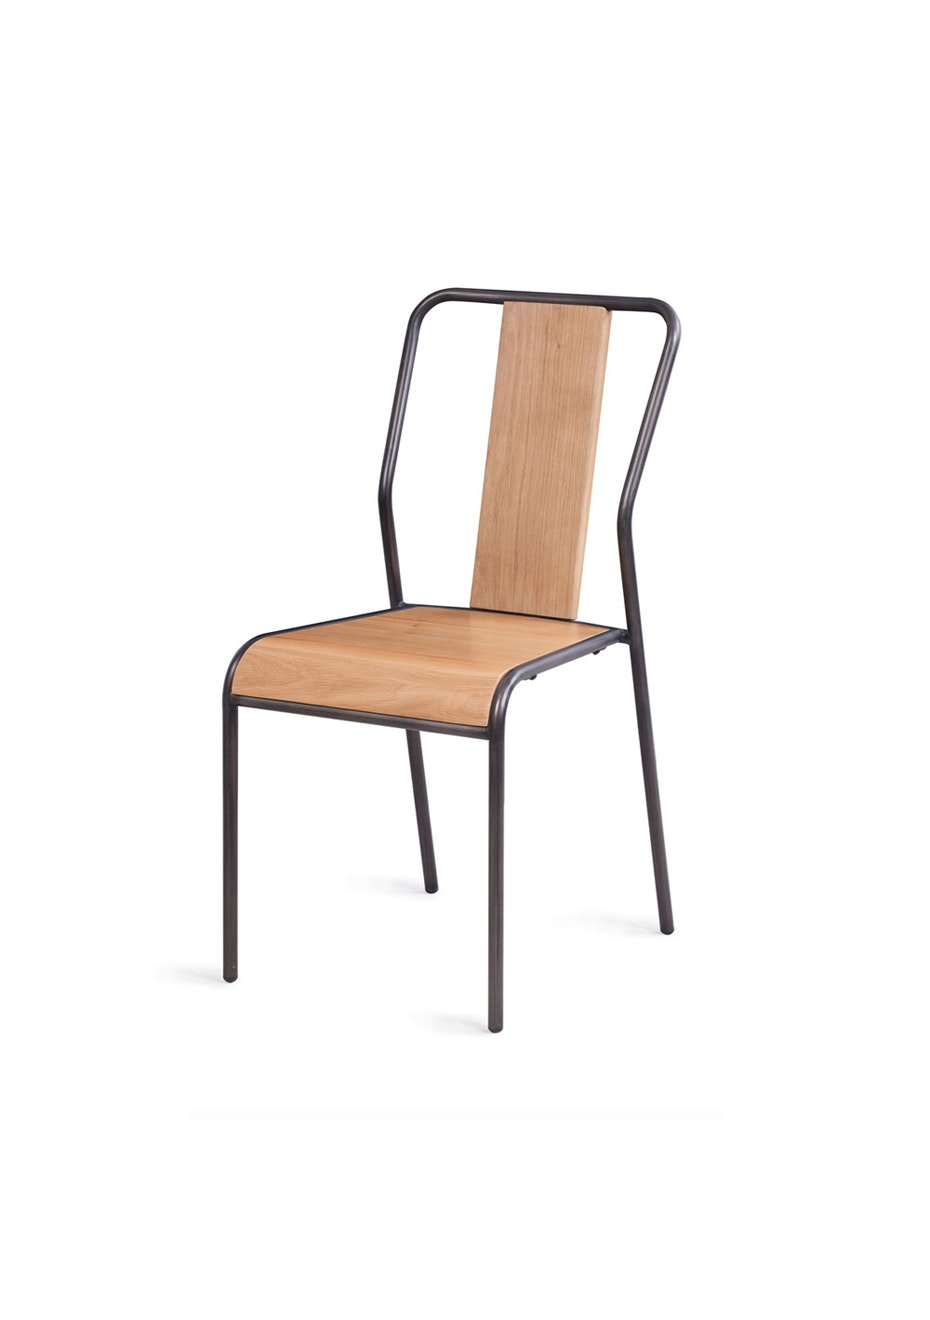 Furniture By Design - Spirit Chair - Brushed Metal